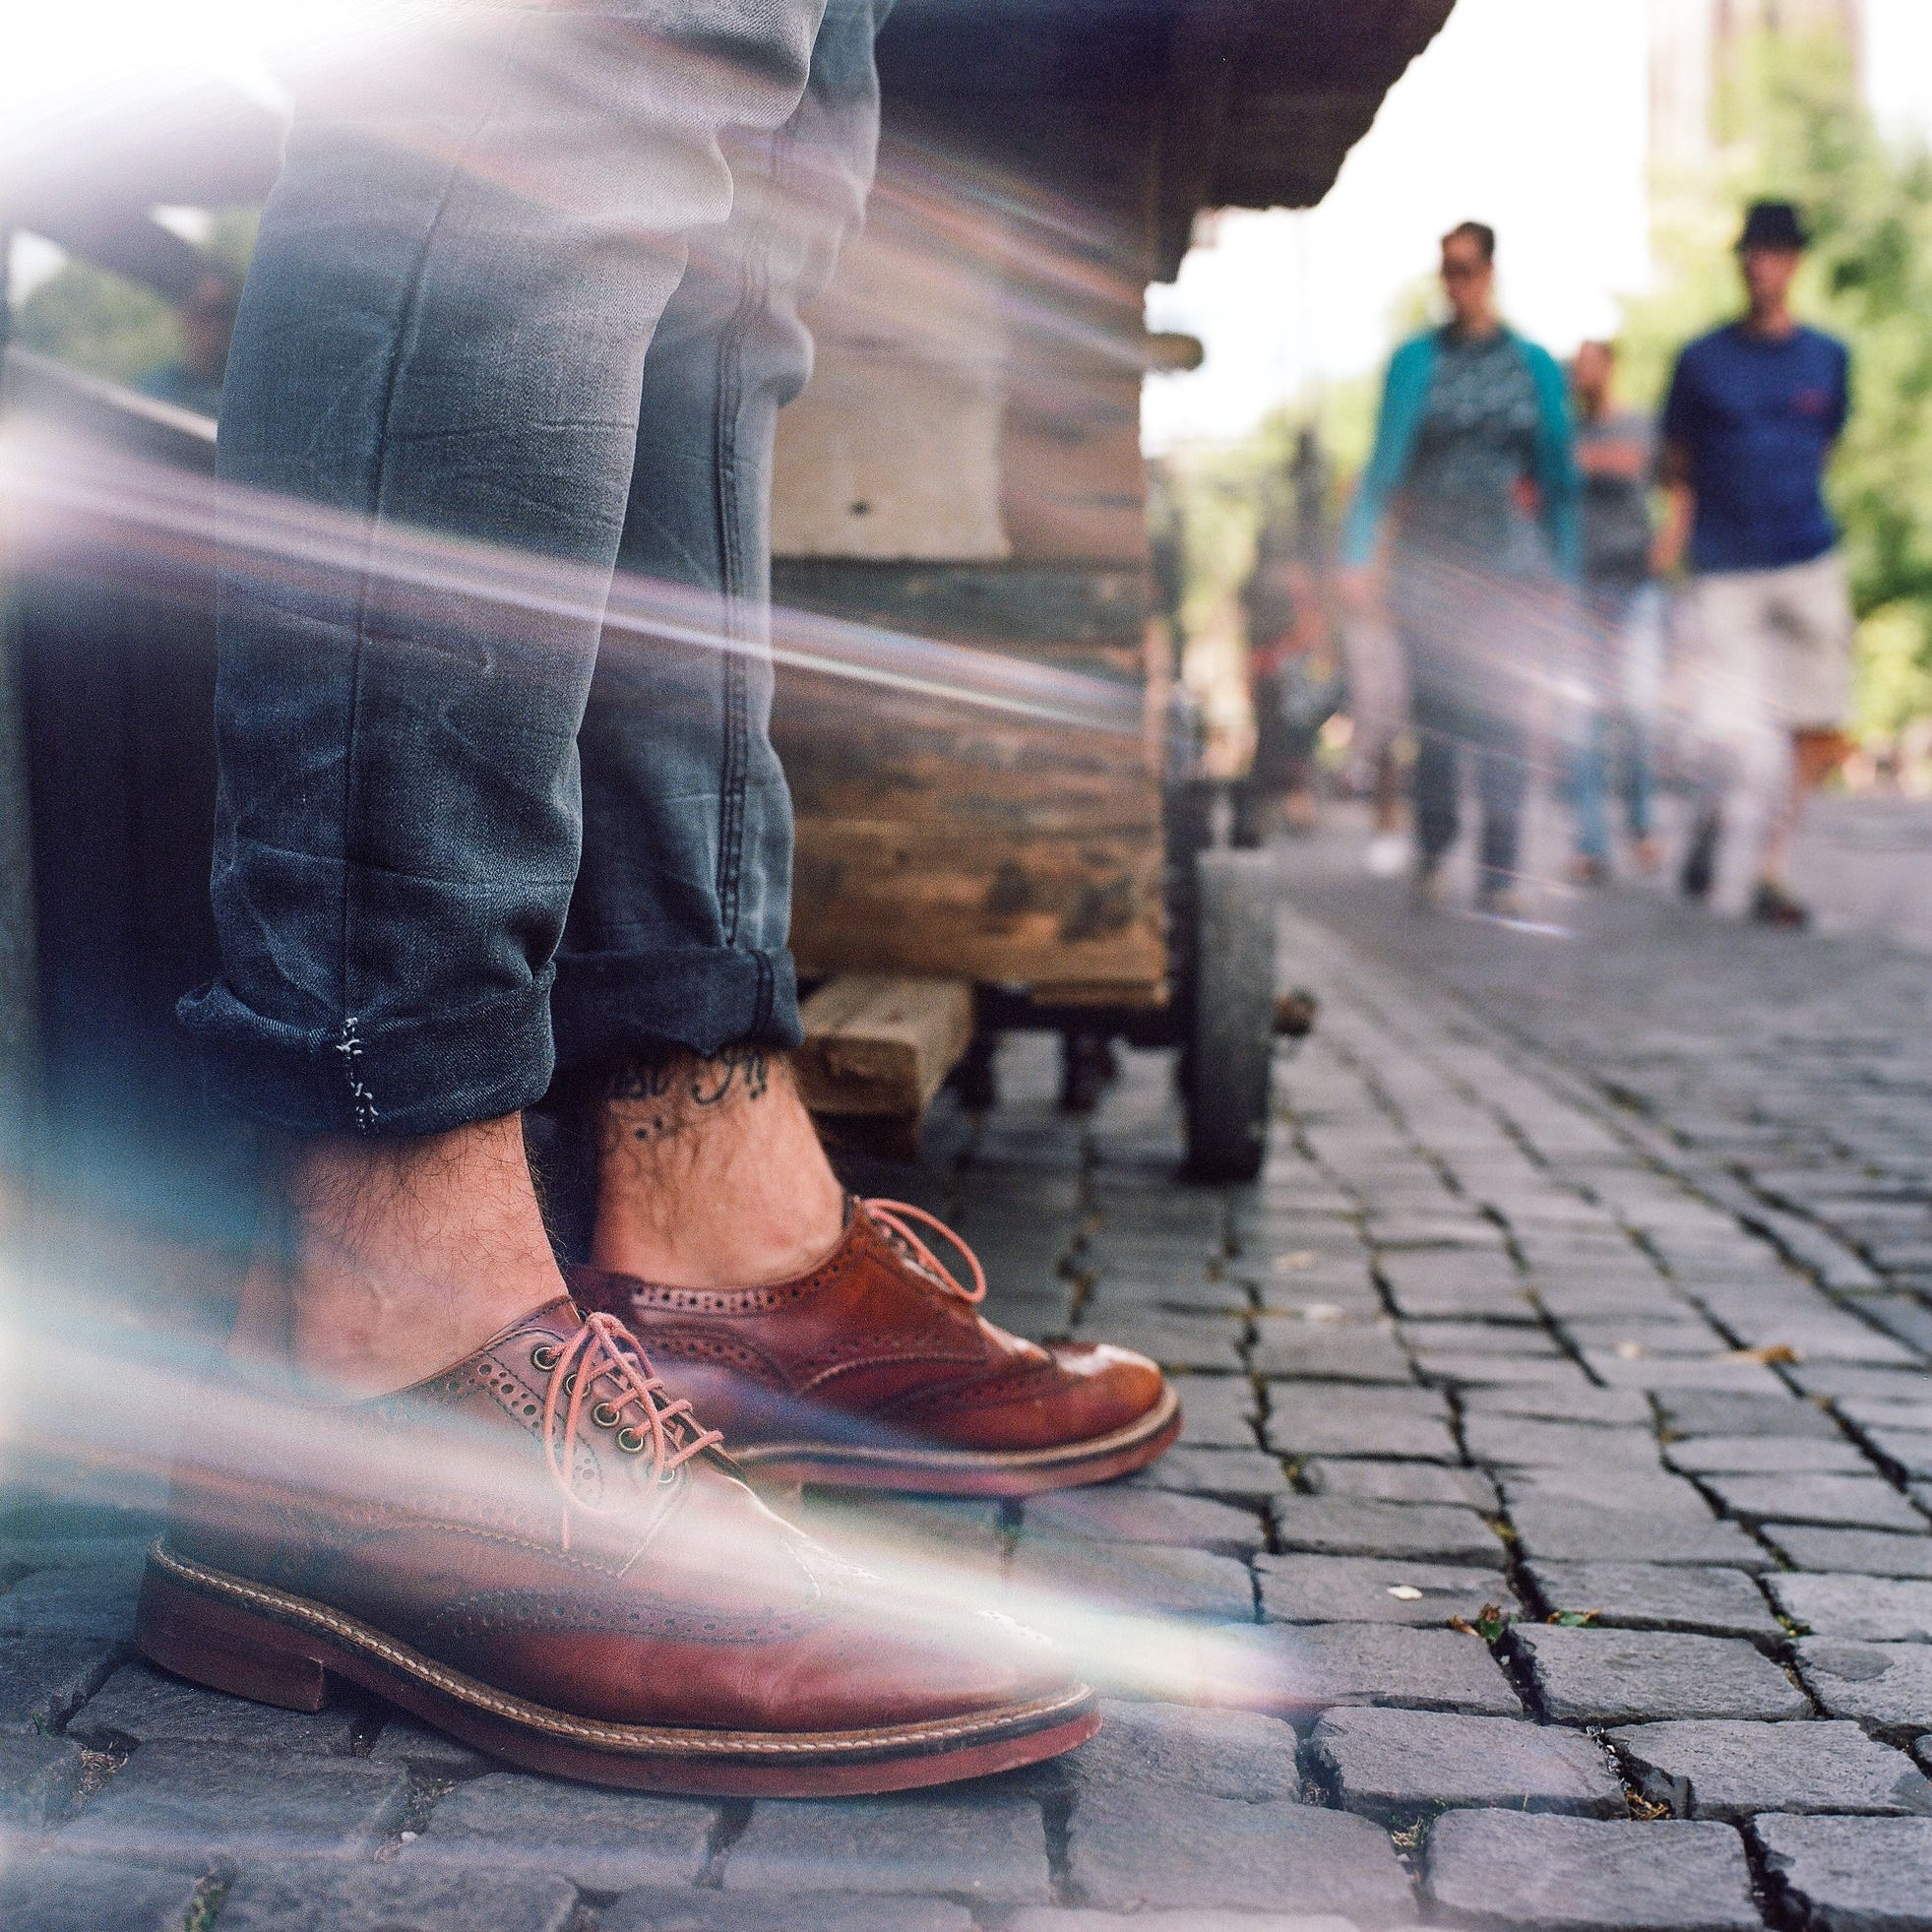 Shoes and Light Leaks